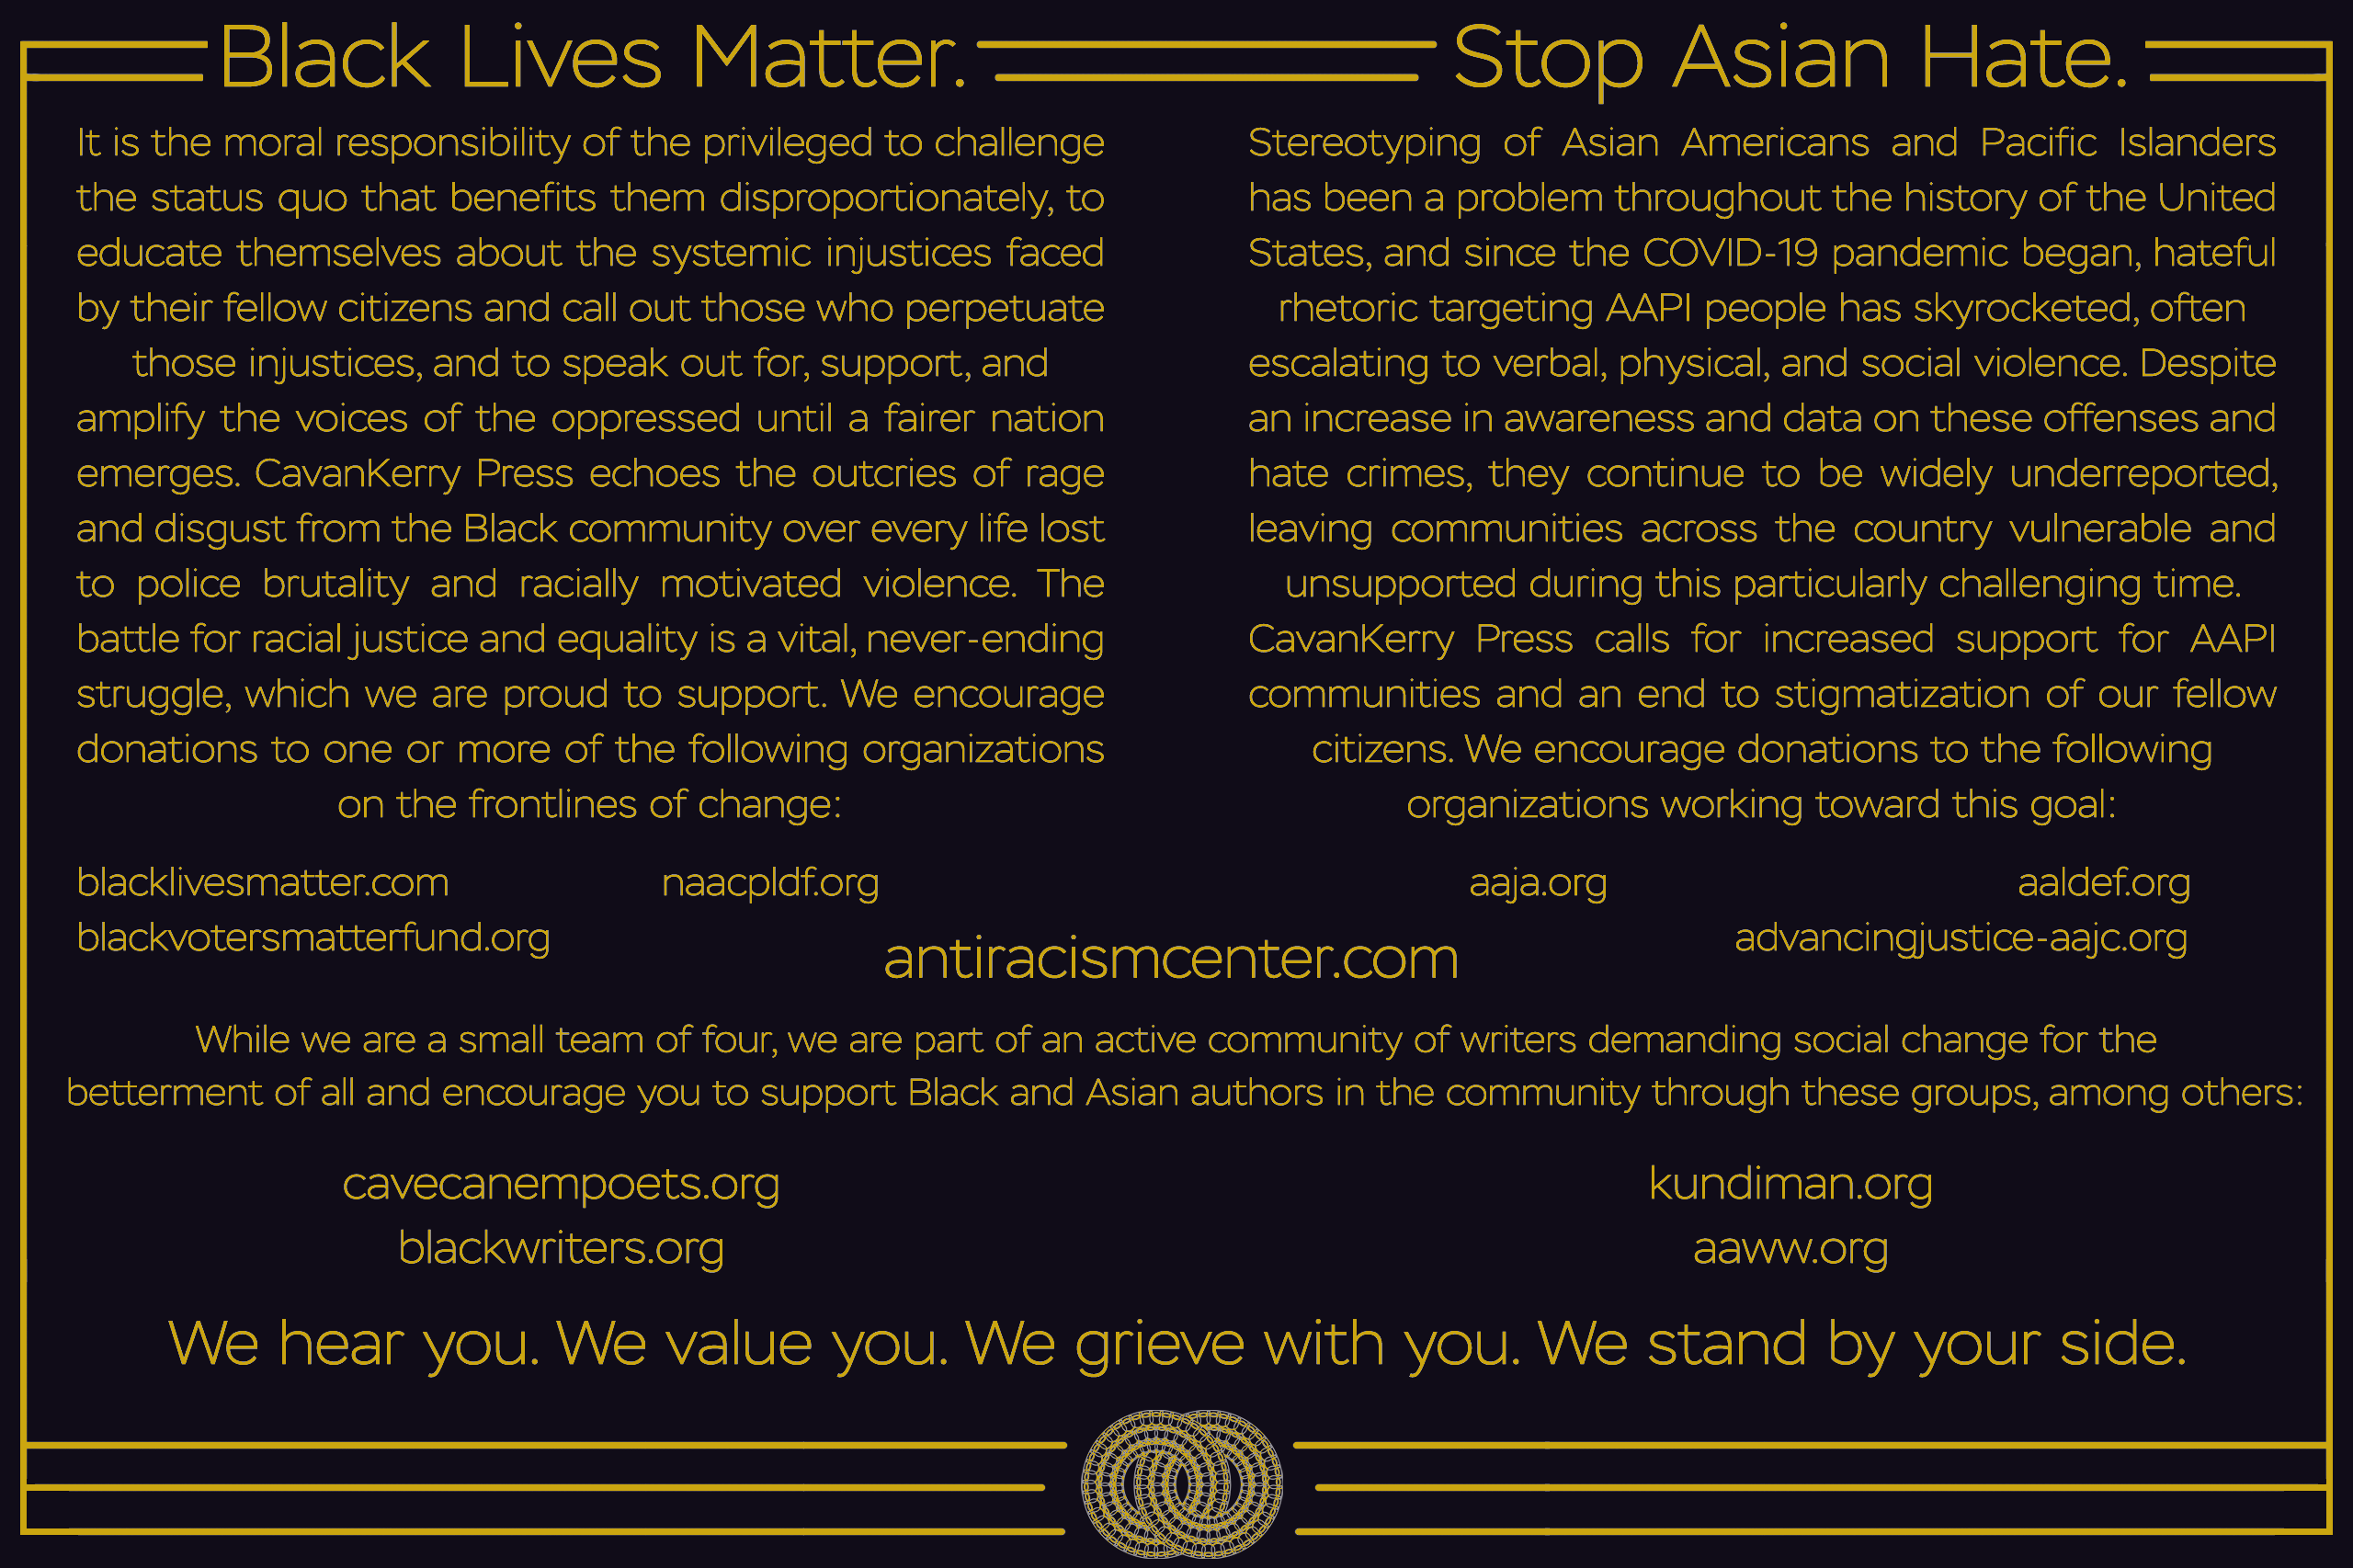 A statement from CavanKerry Press: Black Lives Matter. Stop Asian Hate.